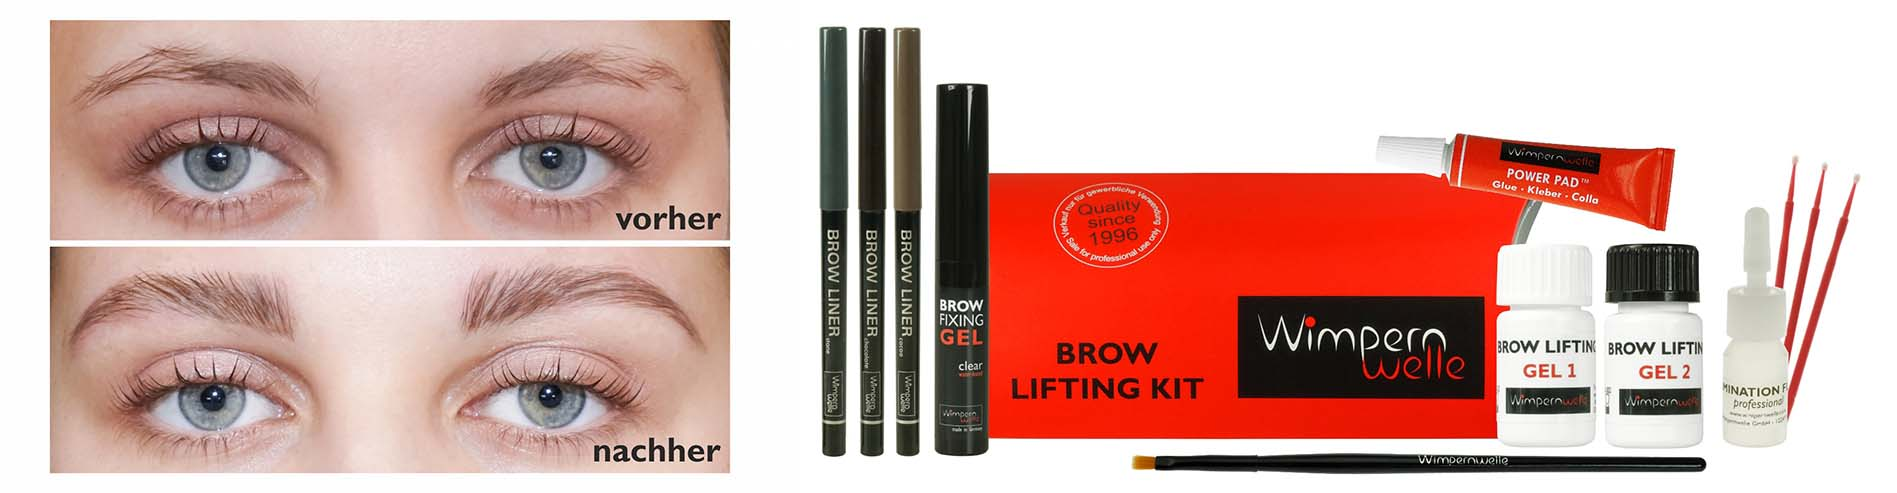 banner_brow_lifting-1